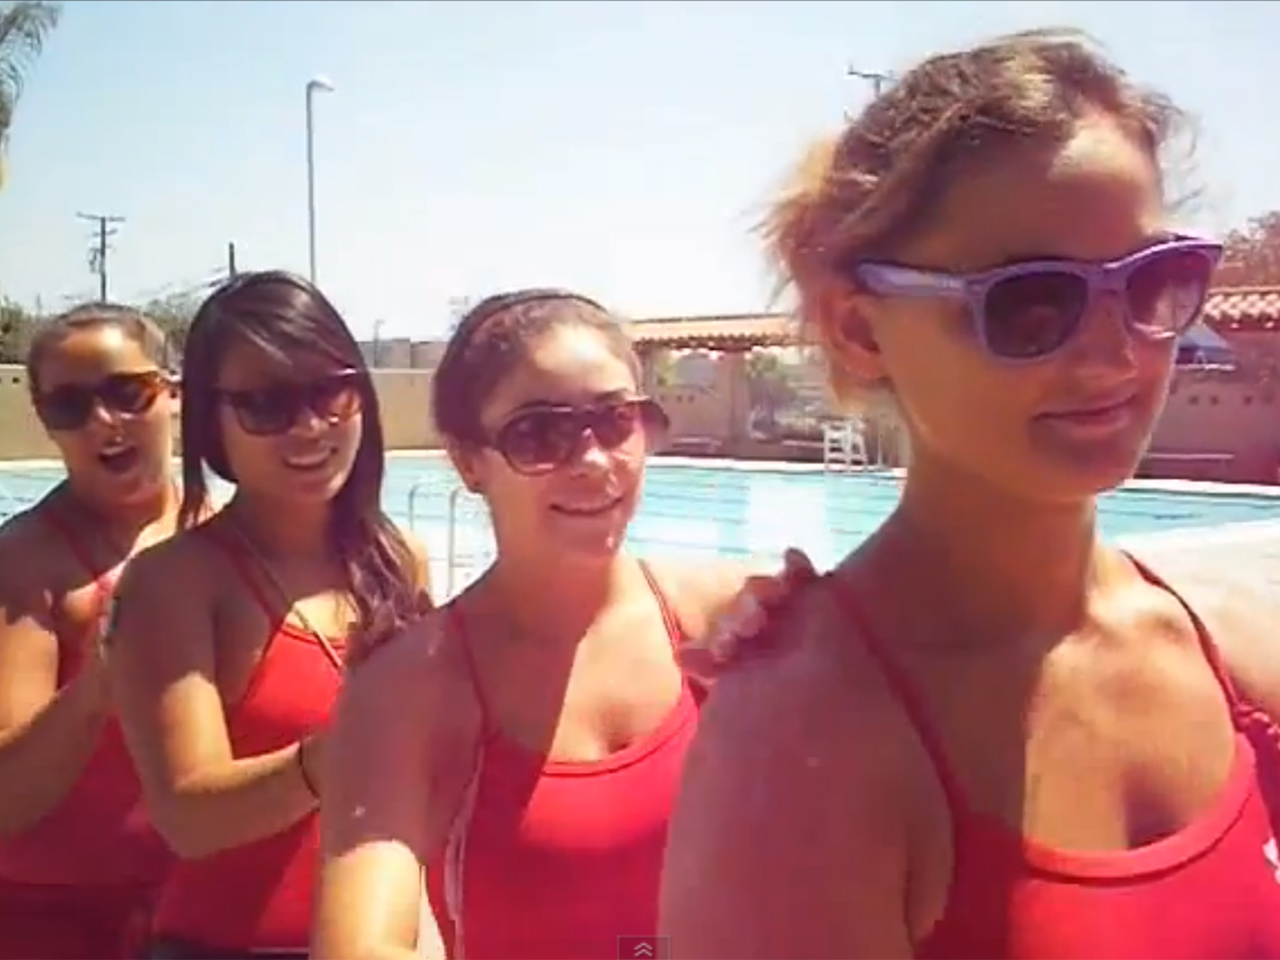 caa0f4f88b6 Calif. town rehires 14 lifeguards fired over spoof video - CBS News